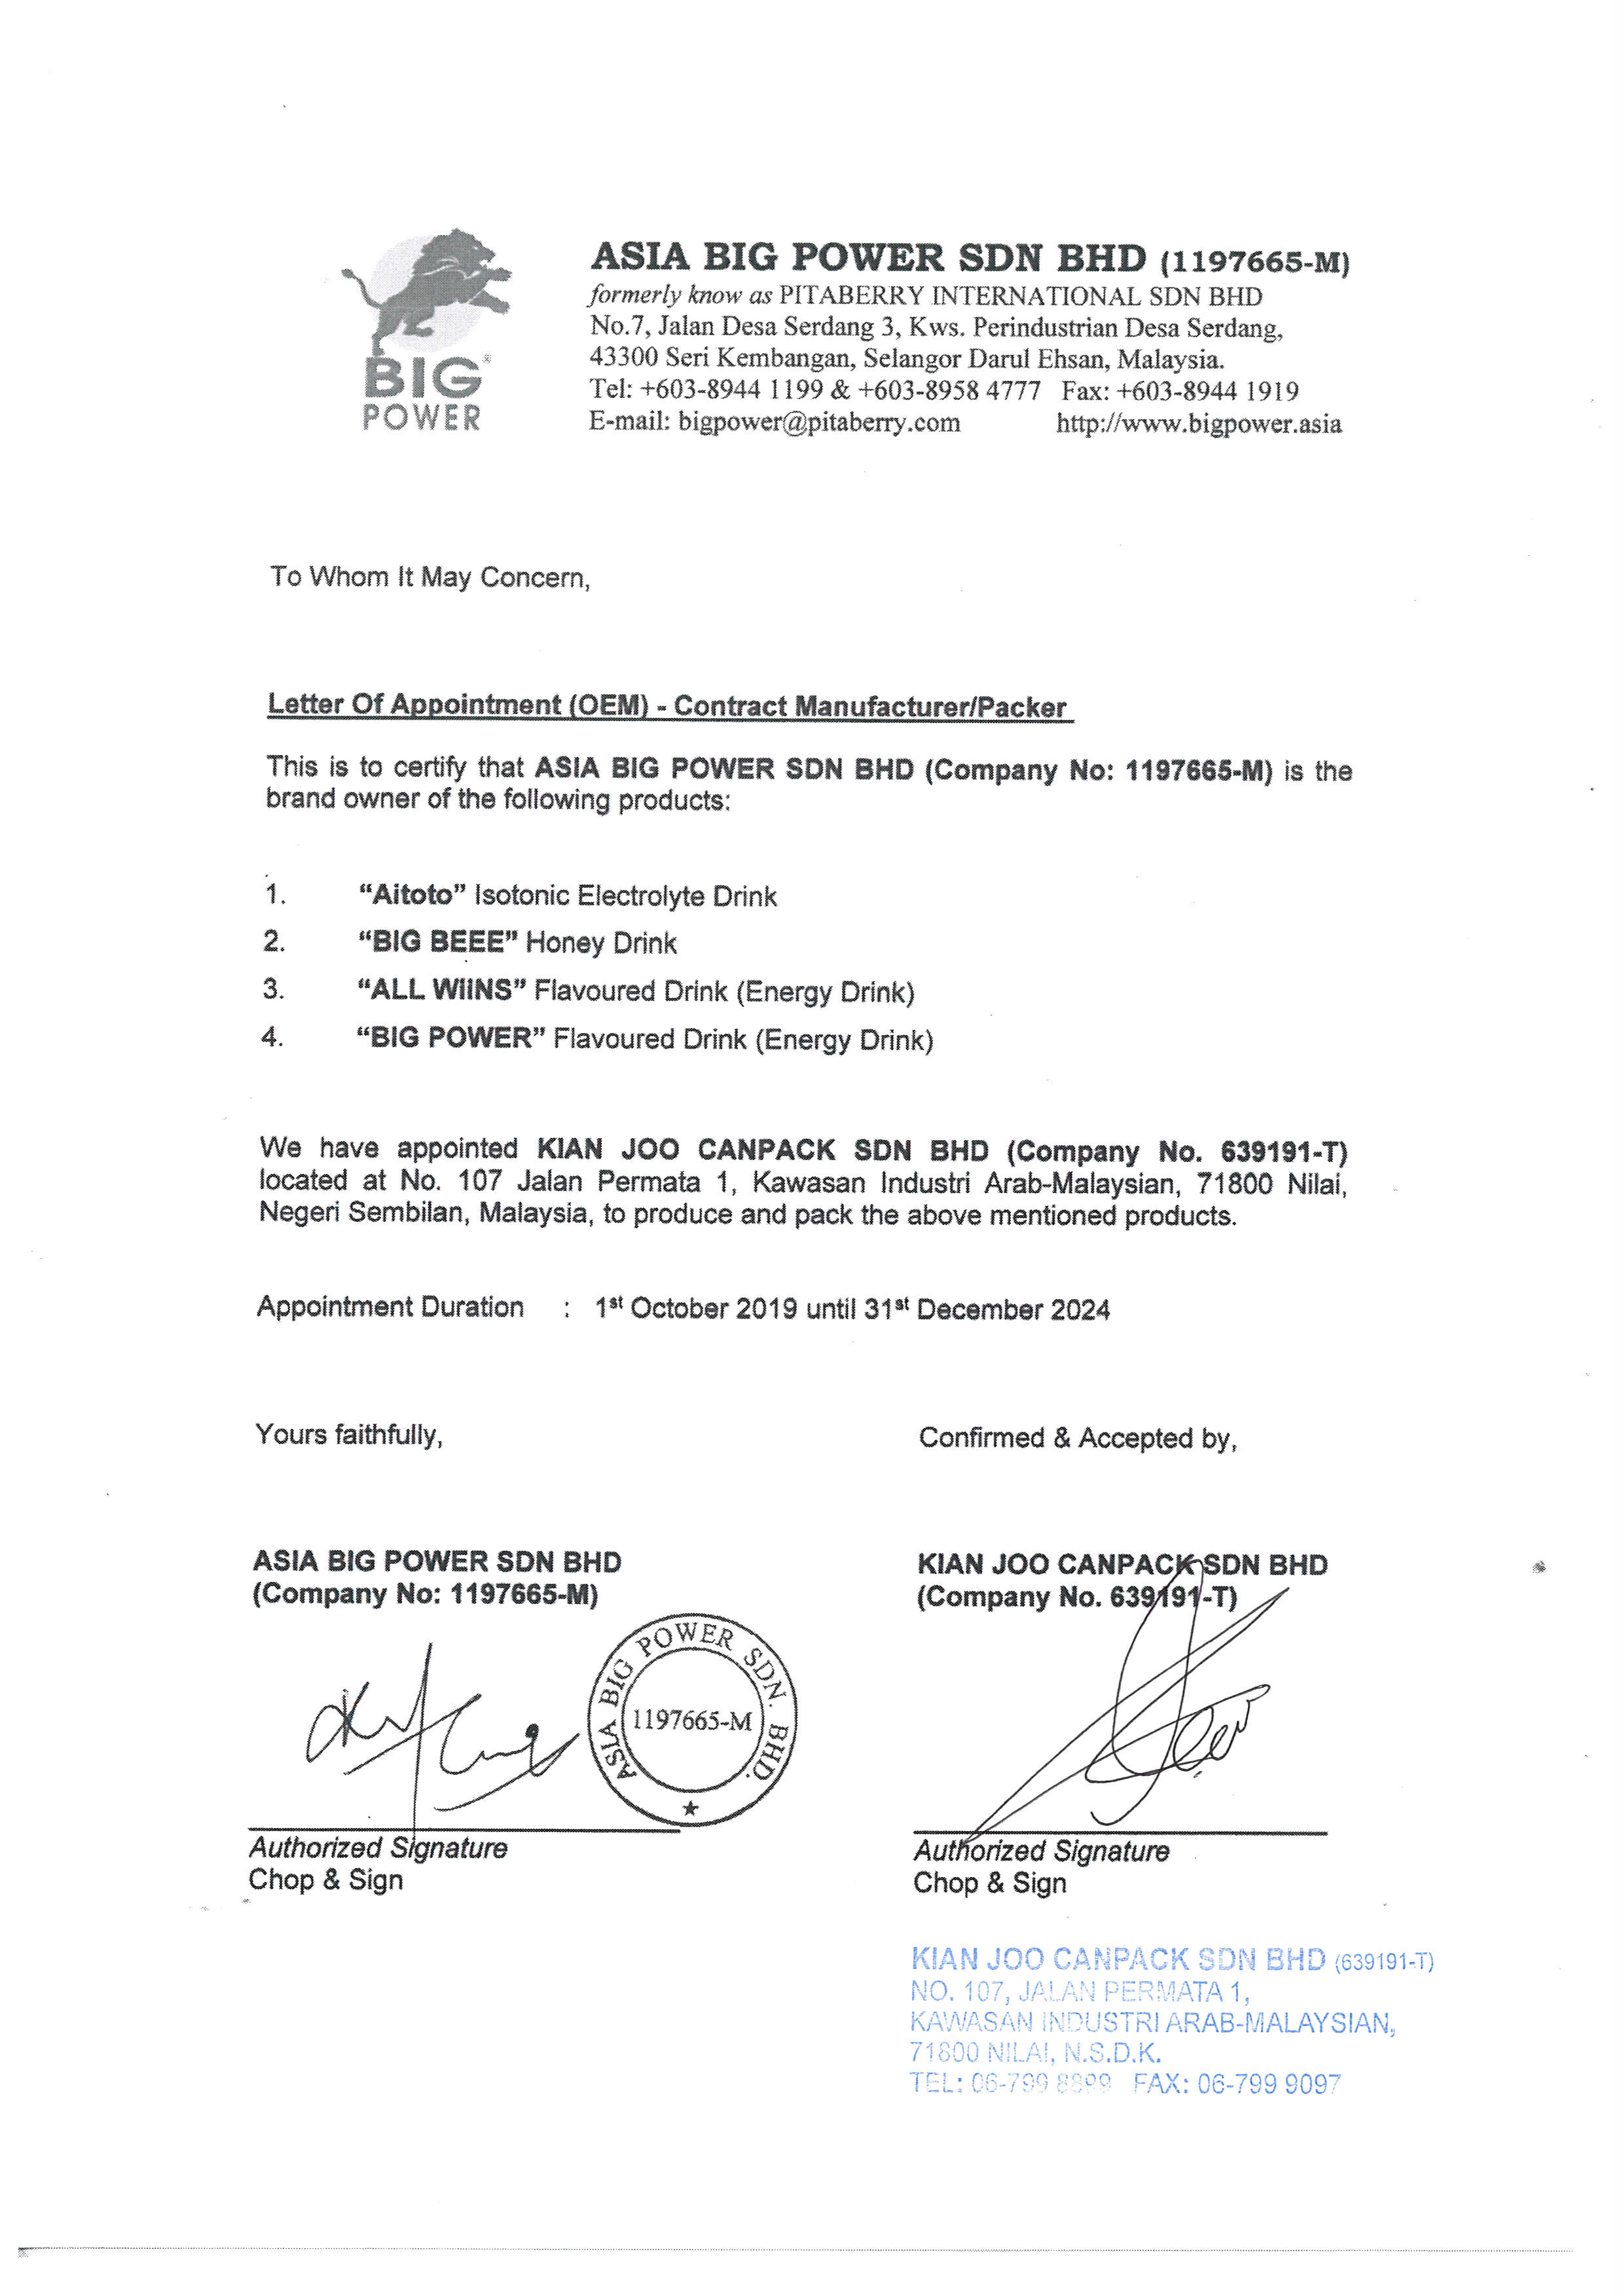 ABP Letter Of Appointment (OEM)